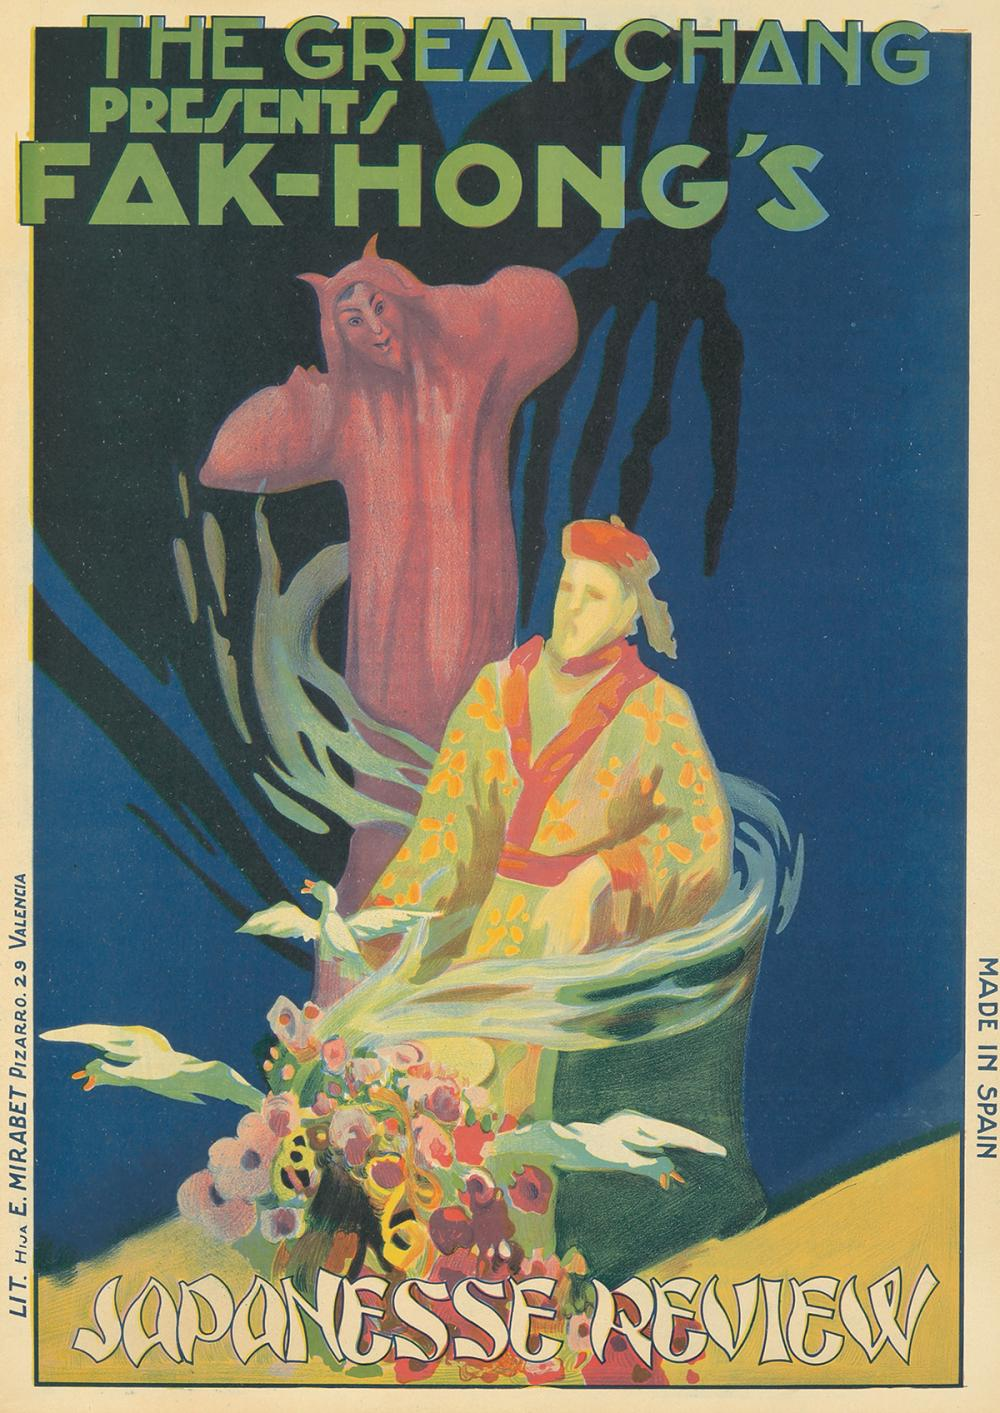 The Great Chang presents Fak-Hong's Japanesse Review. ca. 1923.